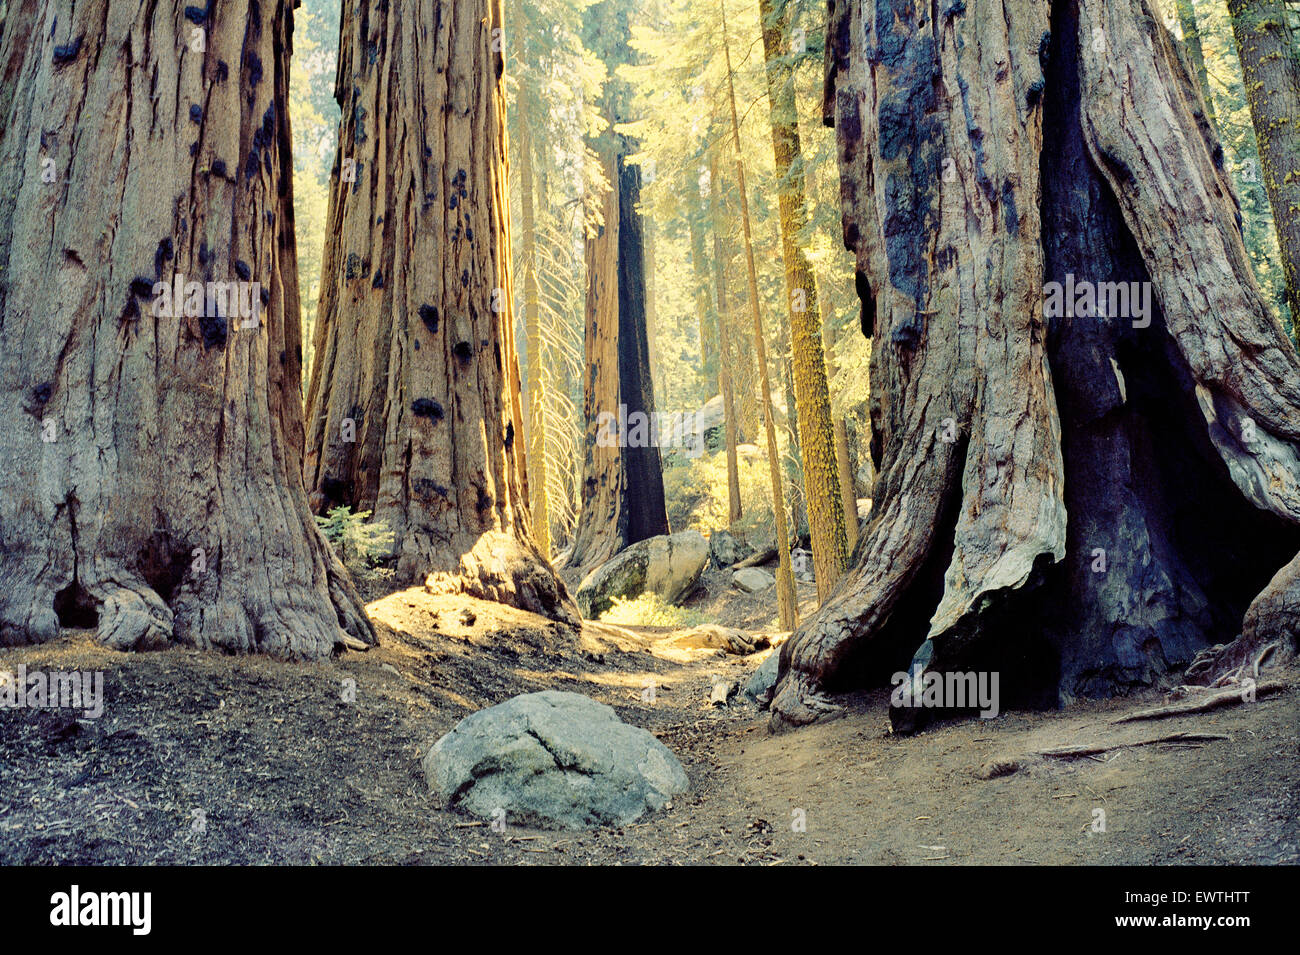 Golden light streaming through a forest of giant redwood trees in Sequoia, Califonia. - Stock Image